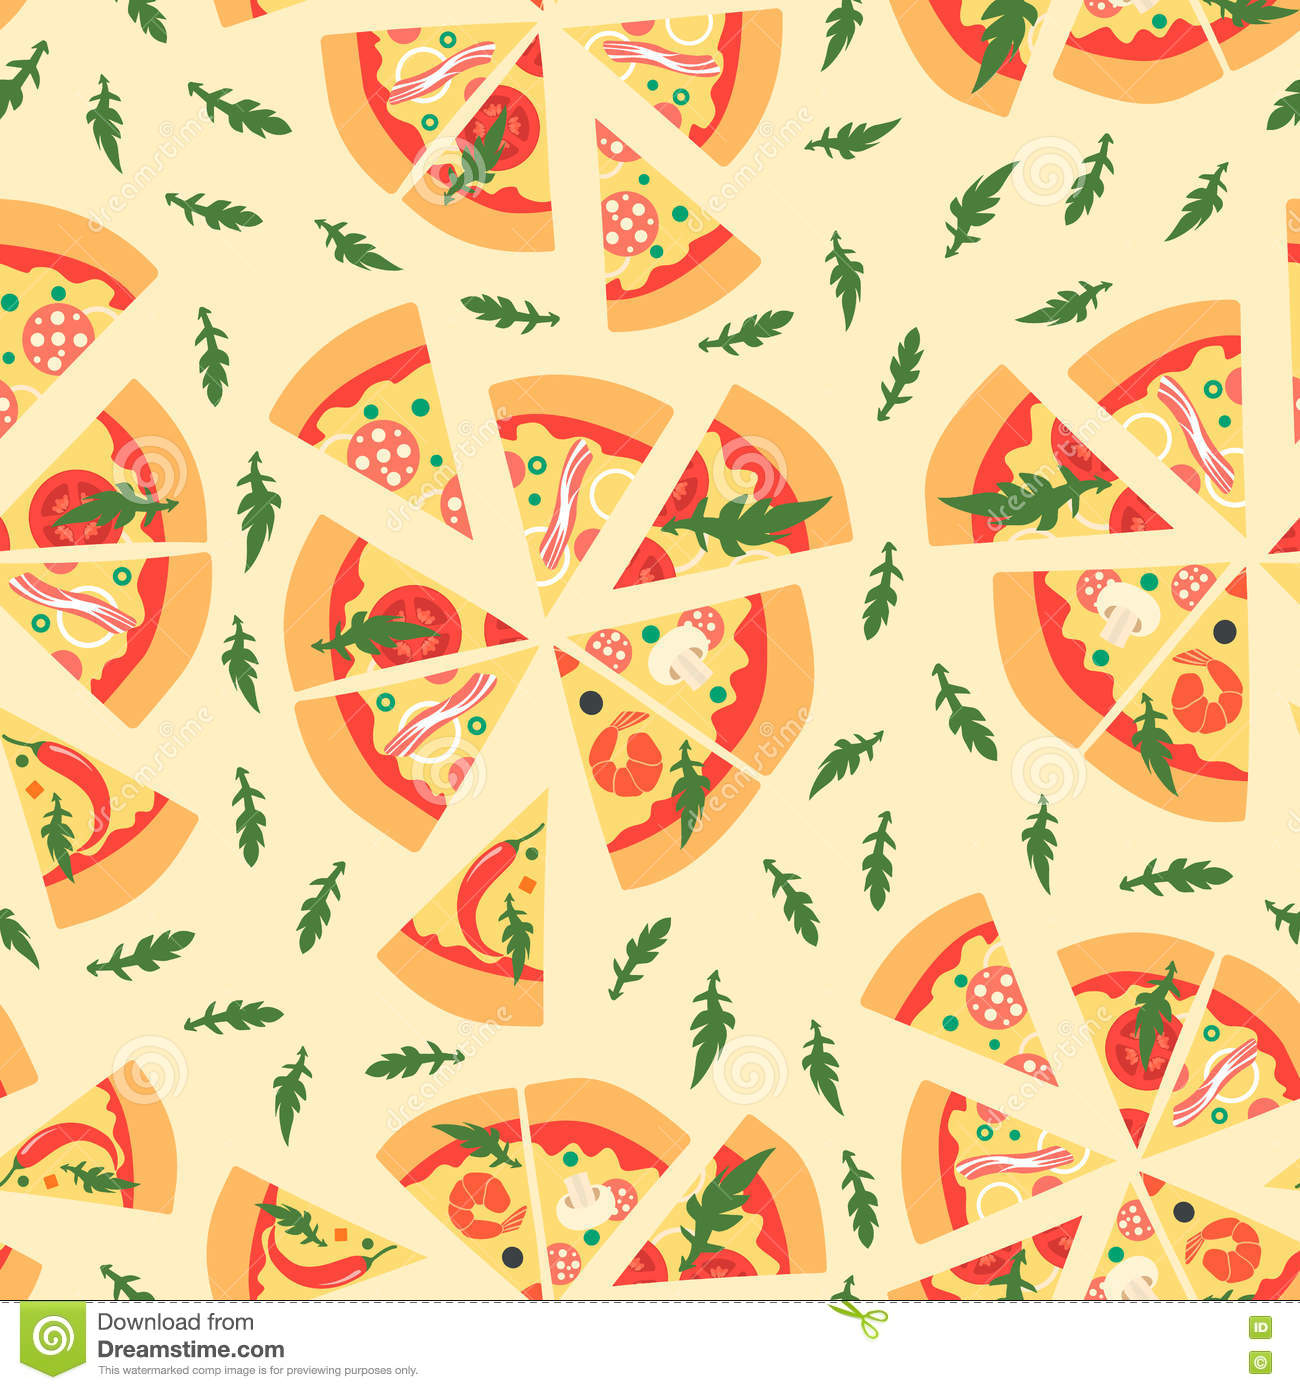 repeating pizza background - photo #3